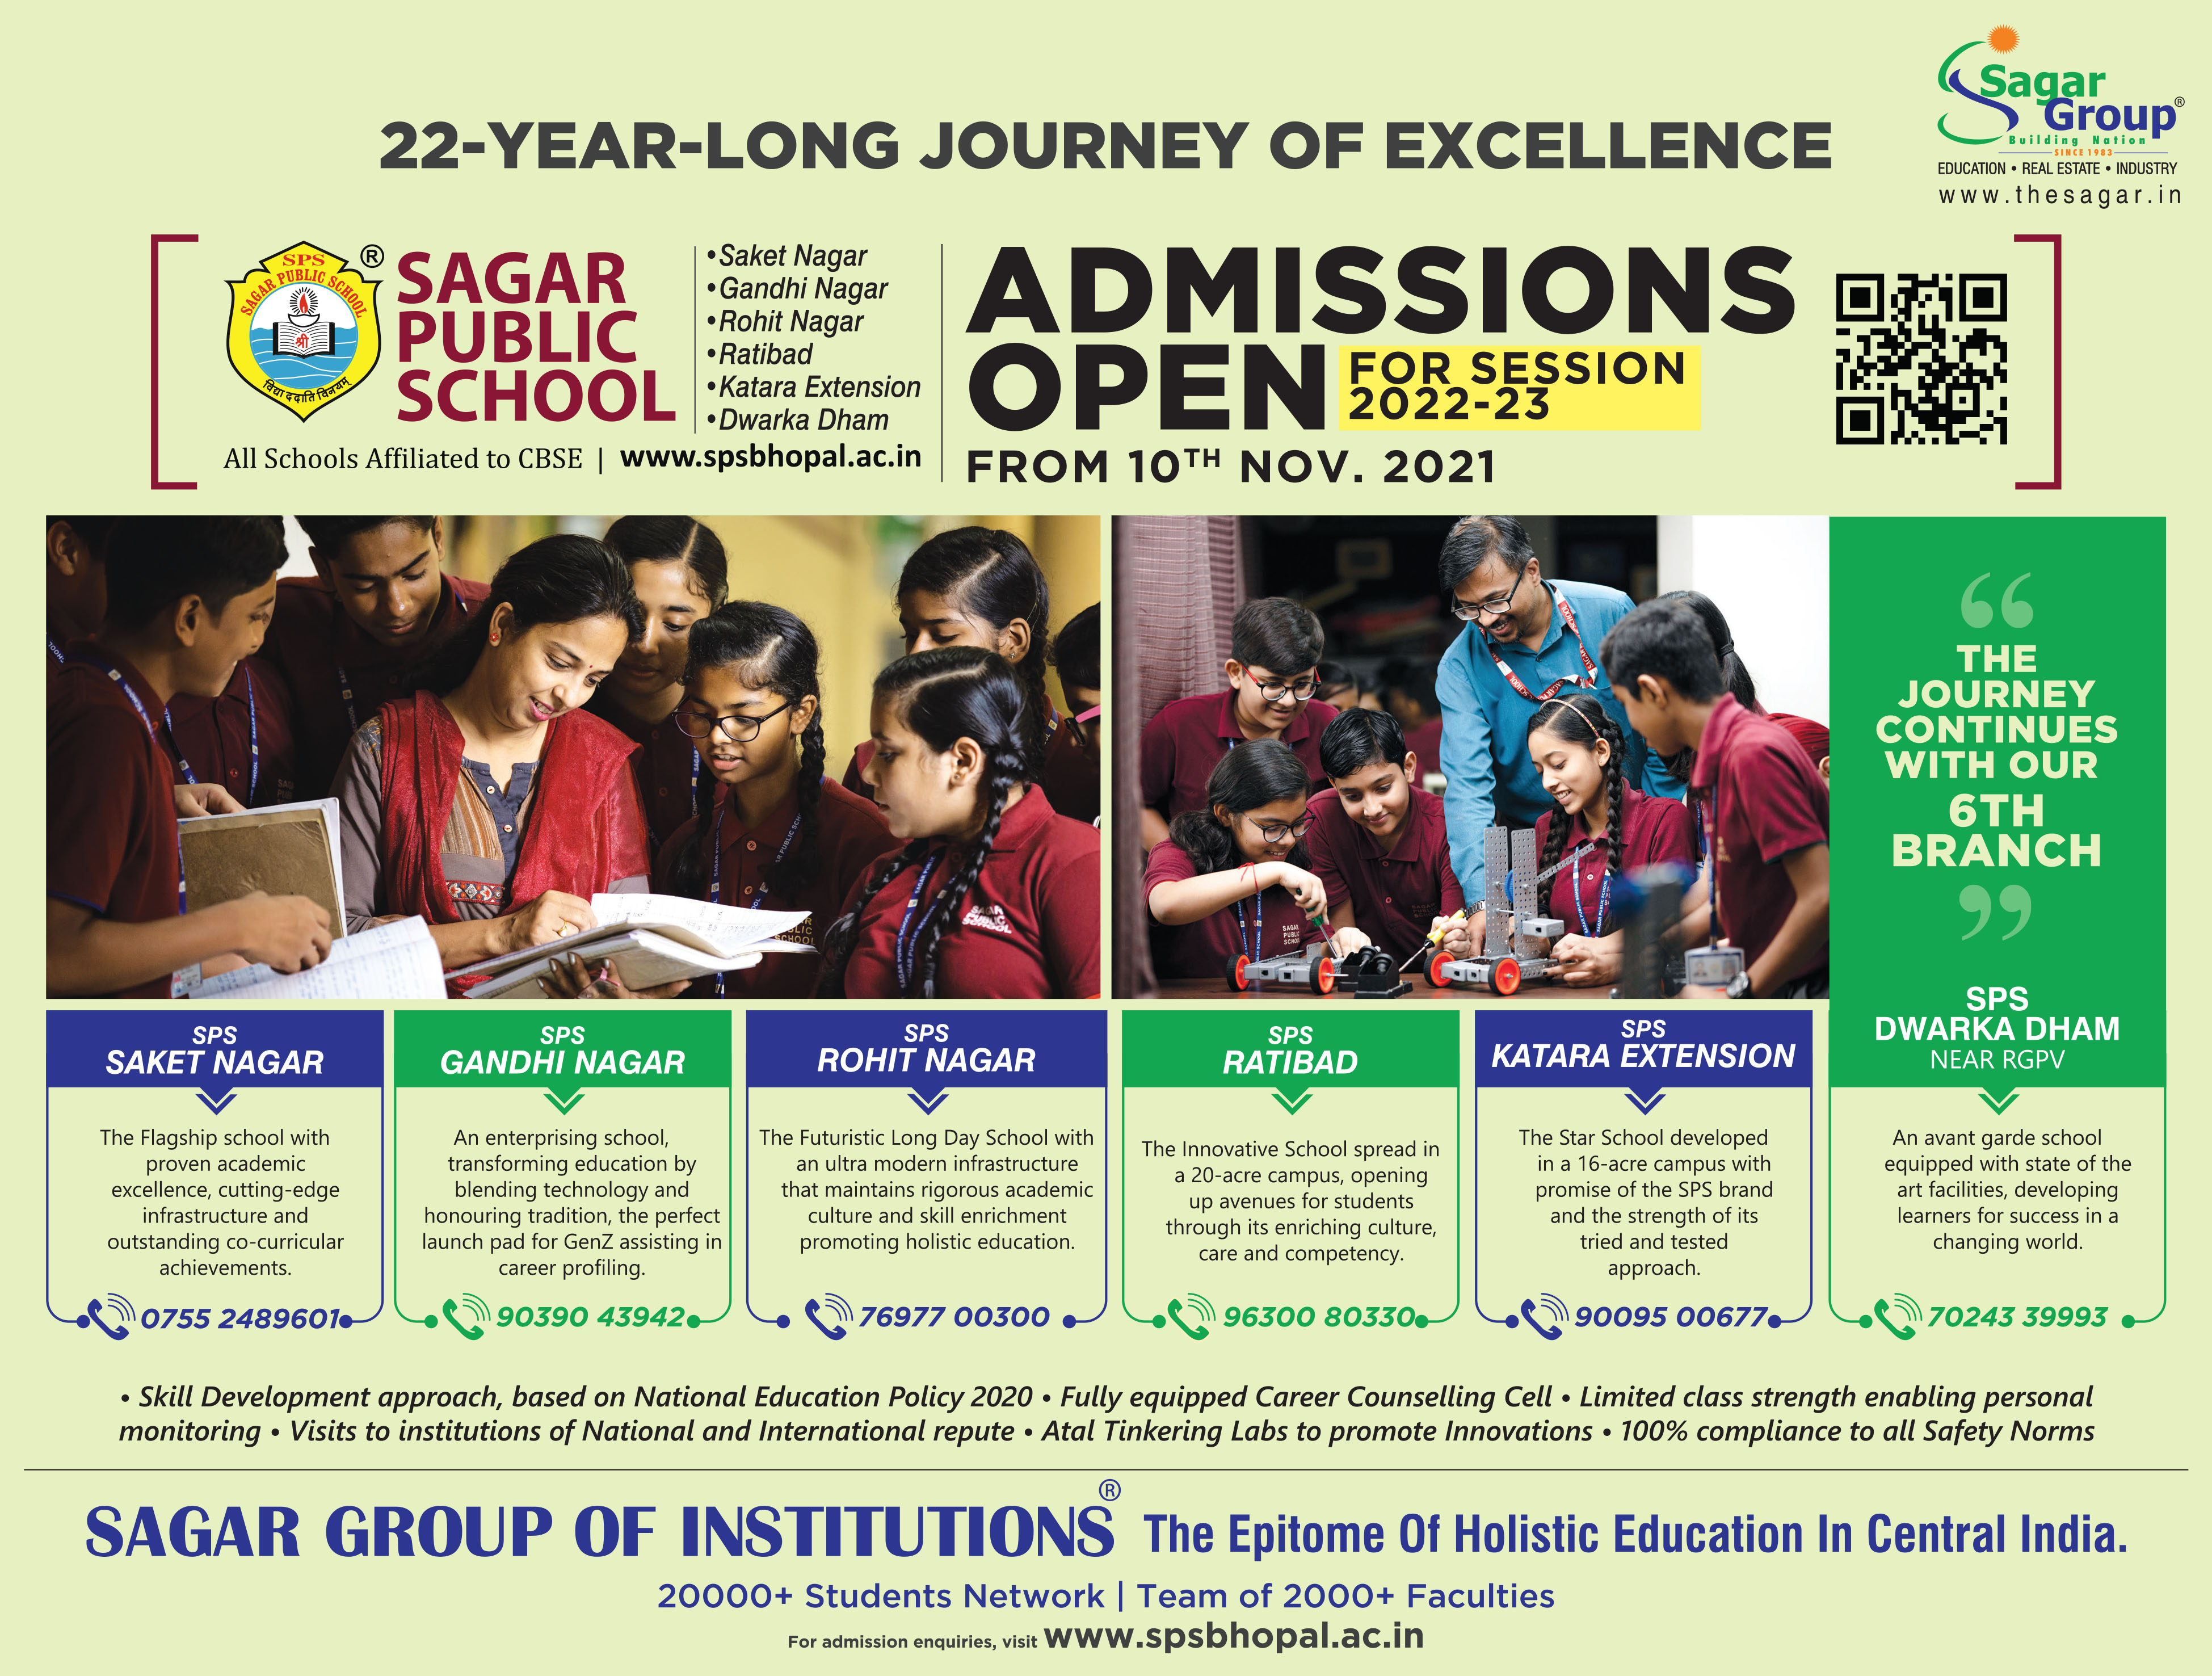 CBSE Schools in Bhopal, Best CBSE Schools in Bhopal, Top CBSE Schools in Bhopal, Top 10 CBSE Schools in Bhopal